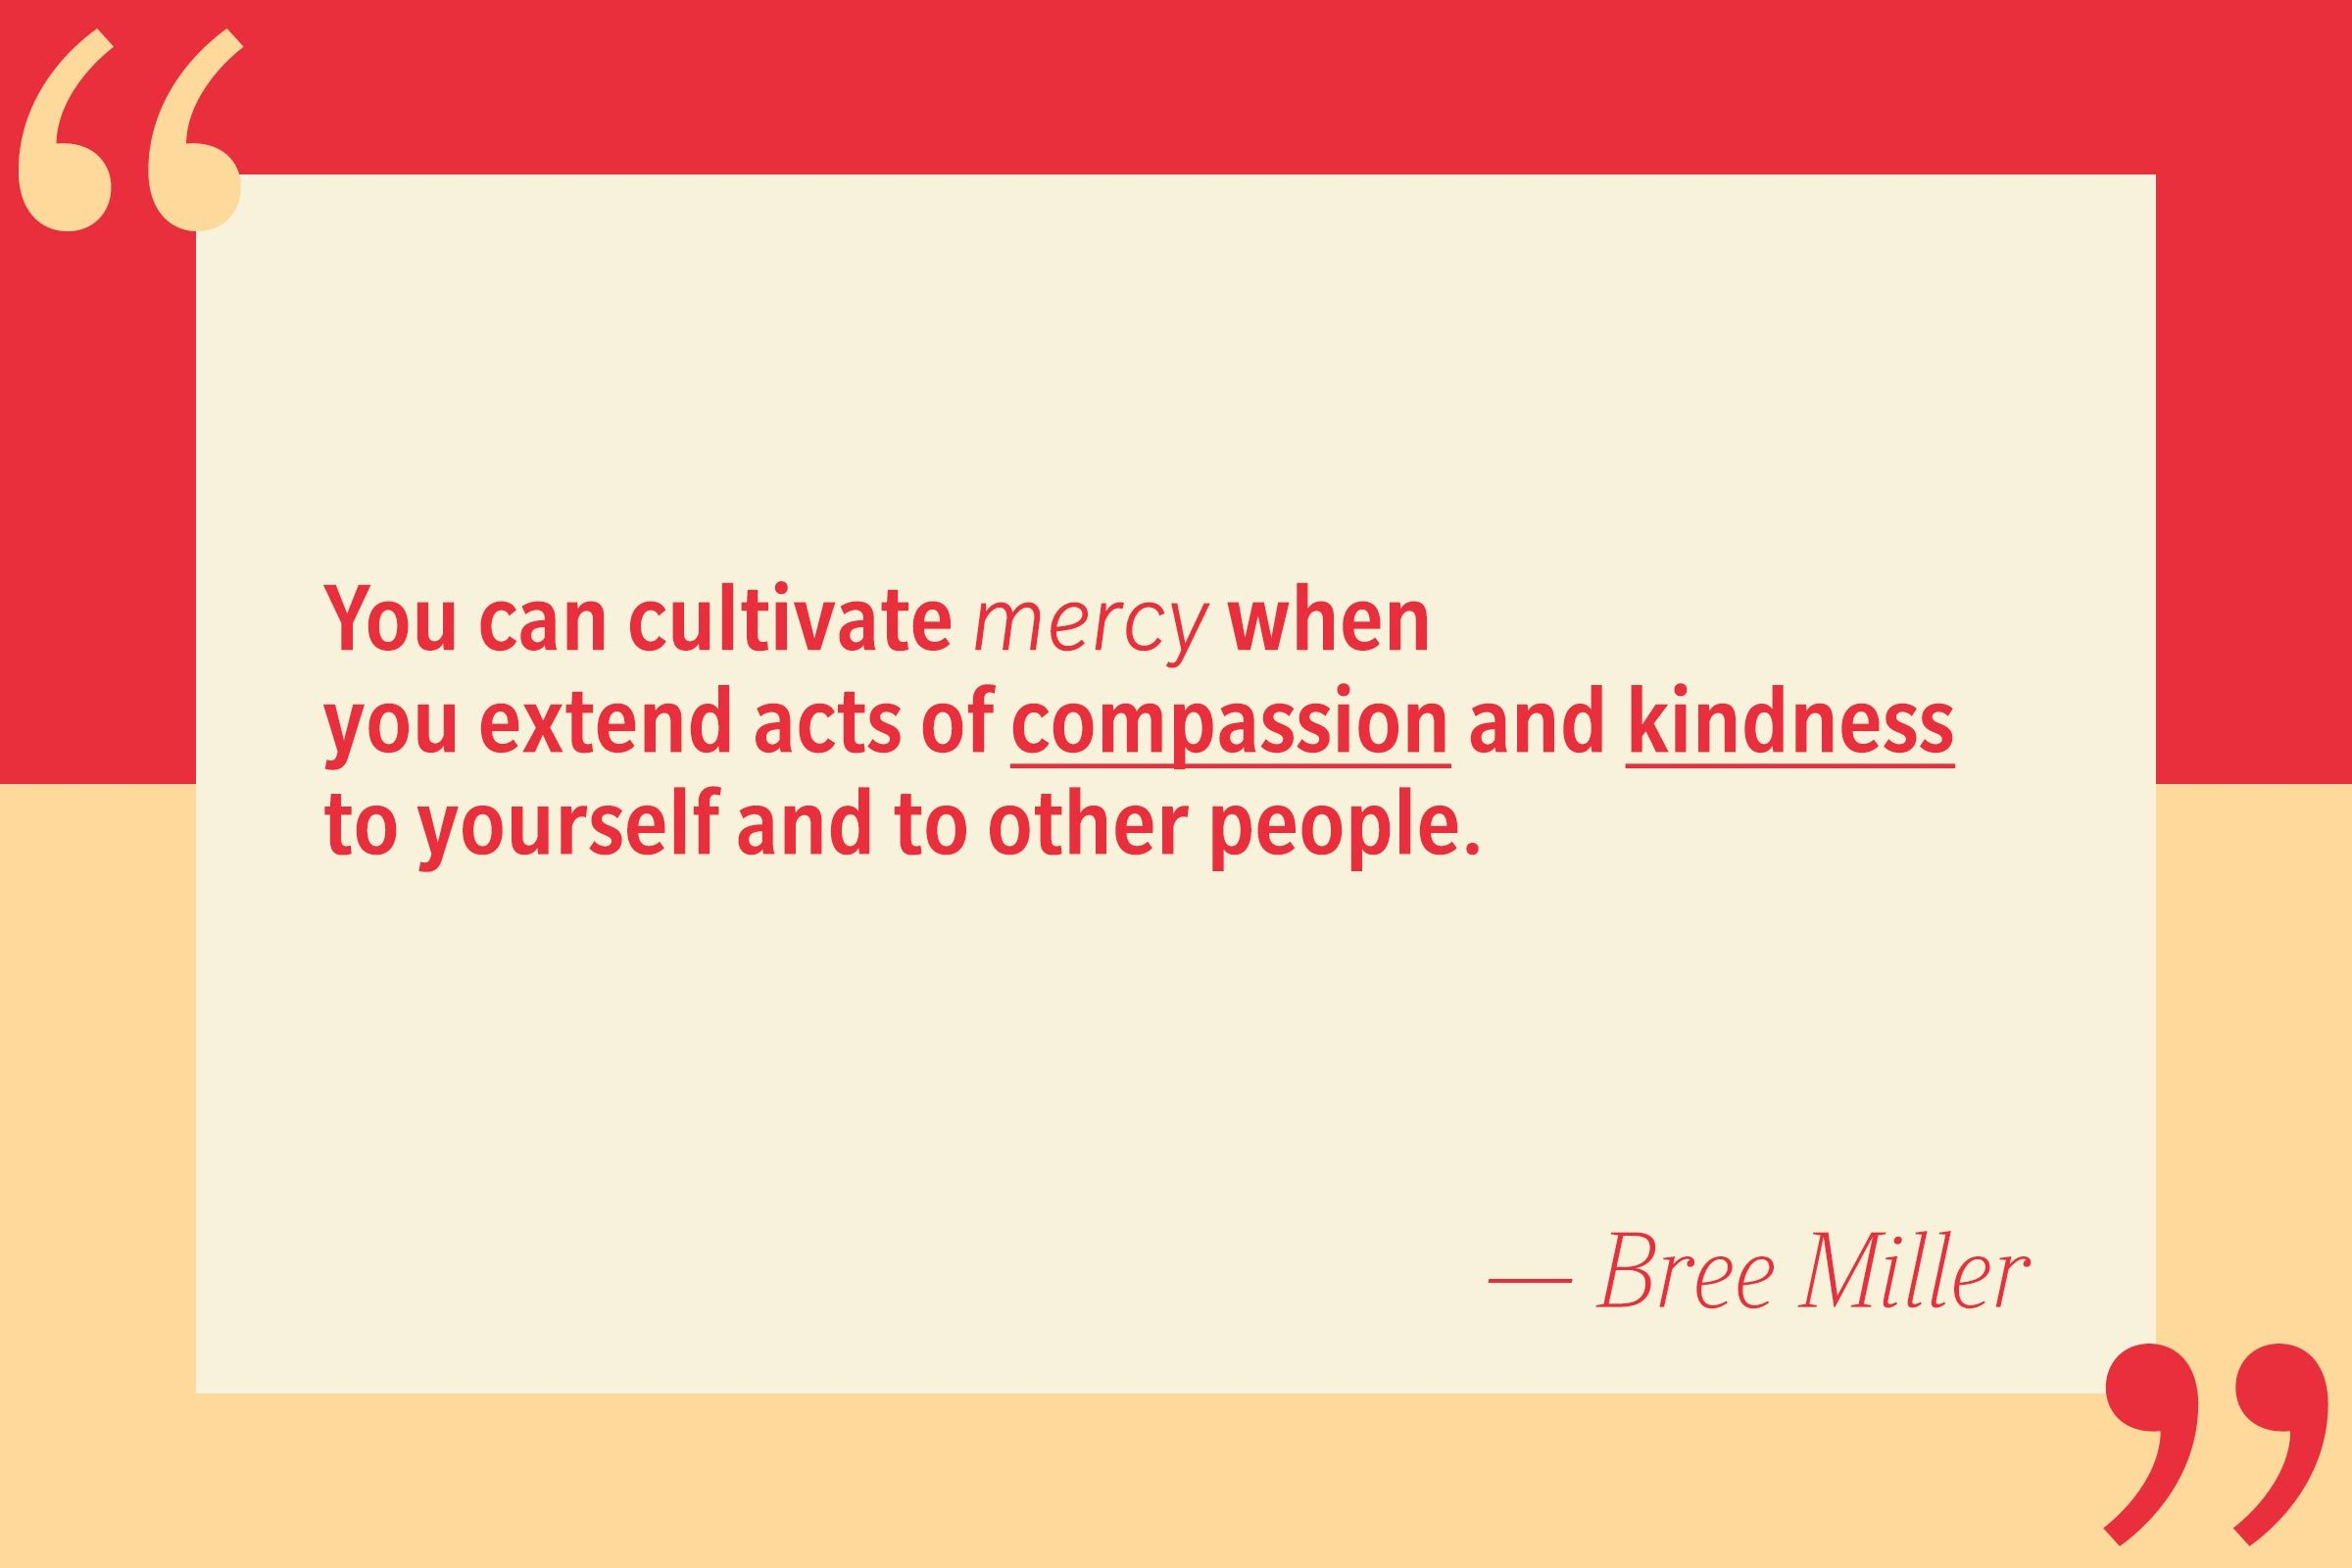 You can cultivate mercy when you extend acts of compassion and kindness to yourself and to other people. — Bree Miller